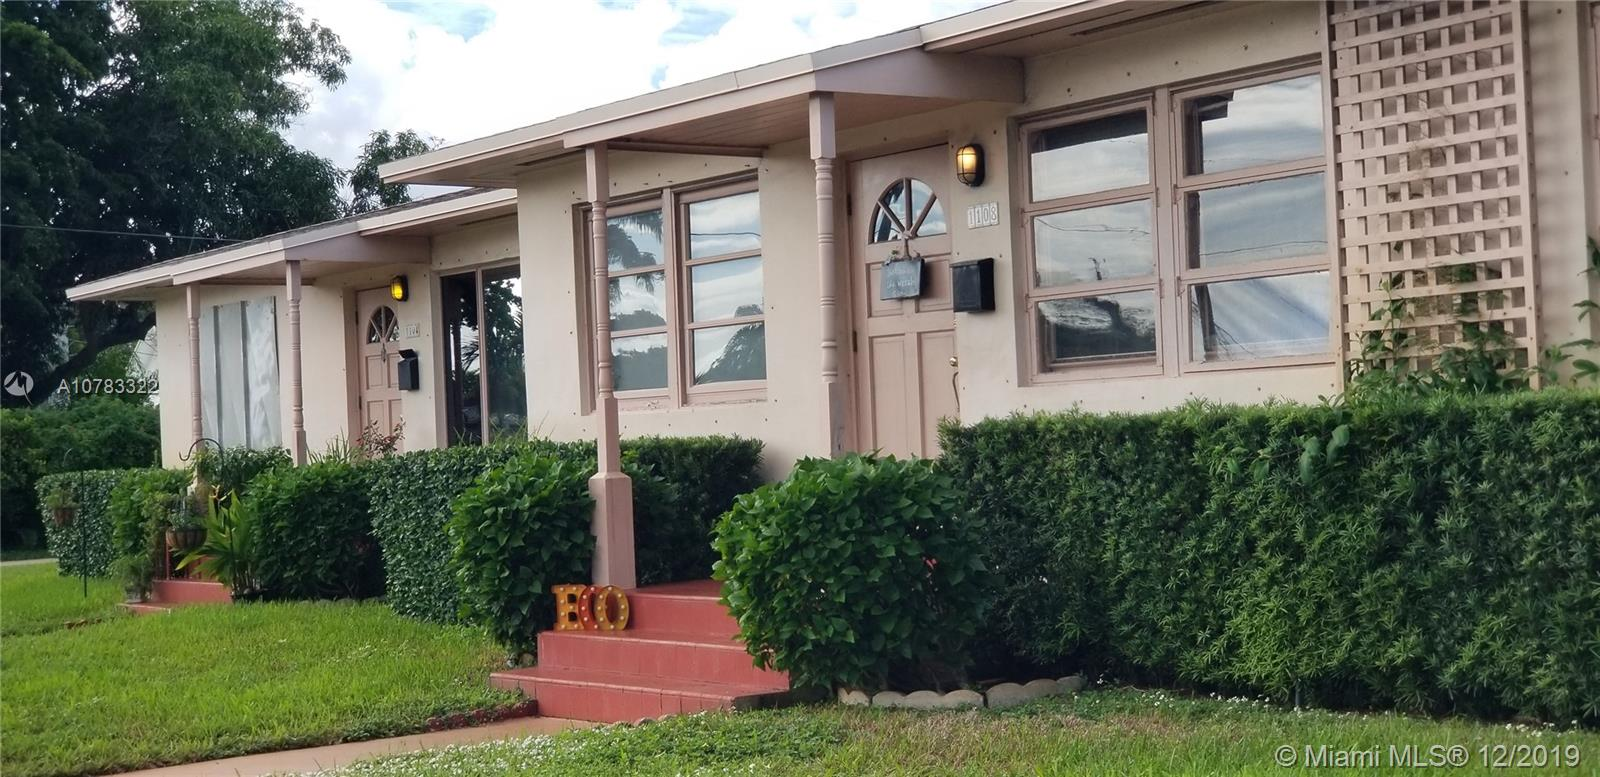 1104 N 16th Ct  For Sale A10783322, FL